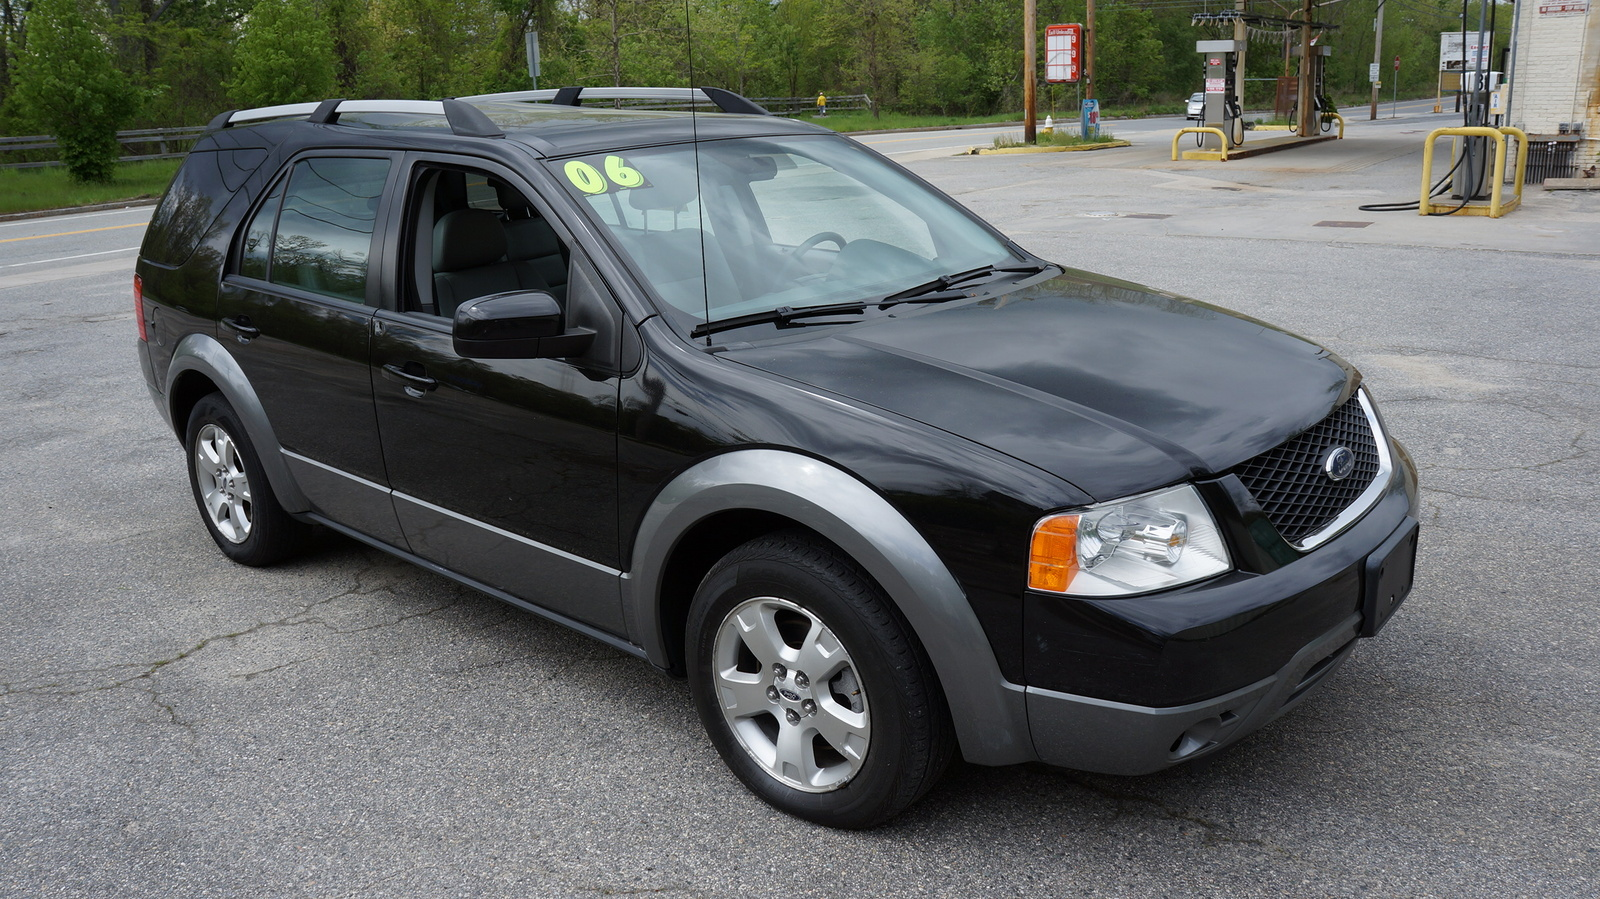 2005 ford freestyle recalls pictures to pin on pinterest. Black Bedroom Furniture Sets. Home Design Ideas